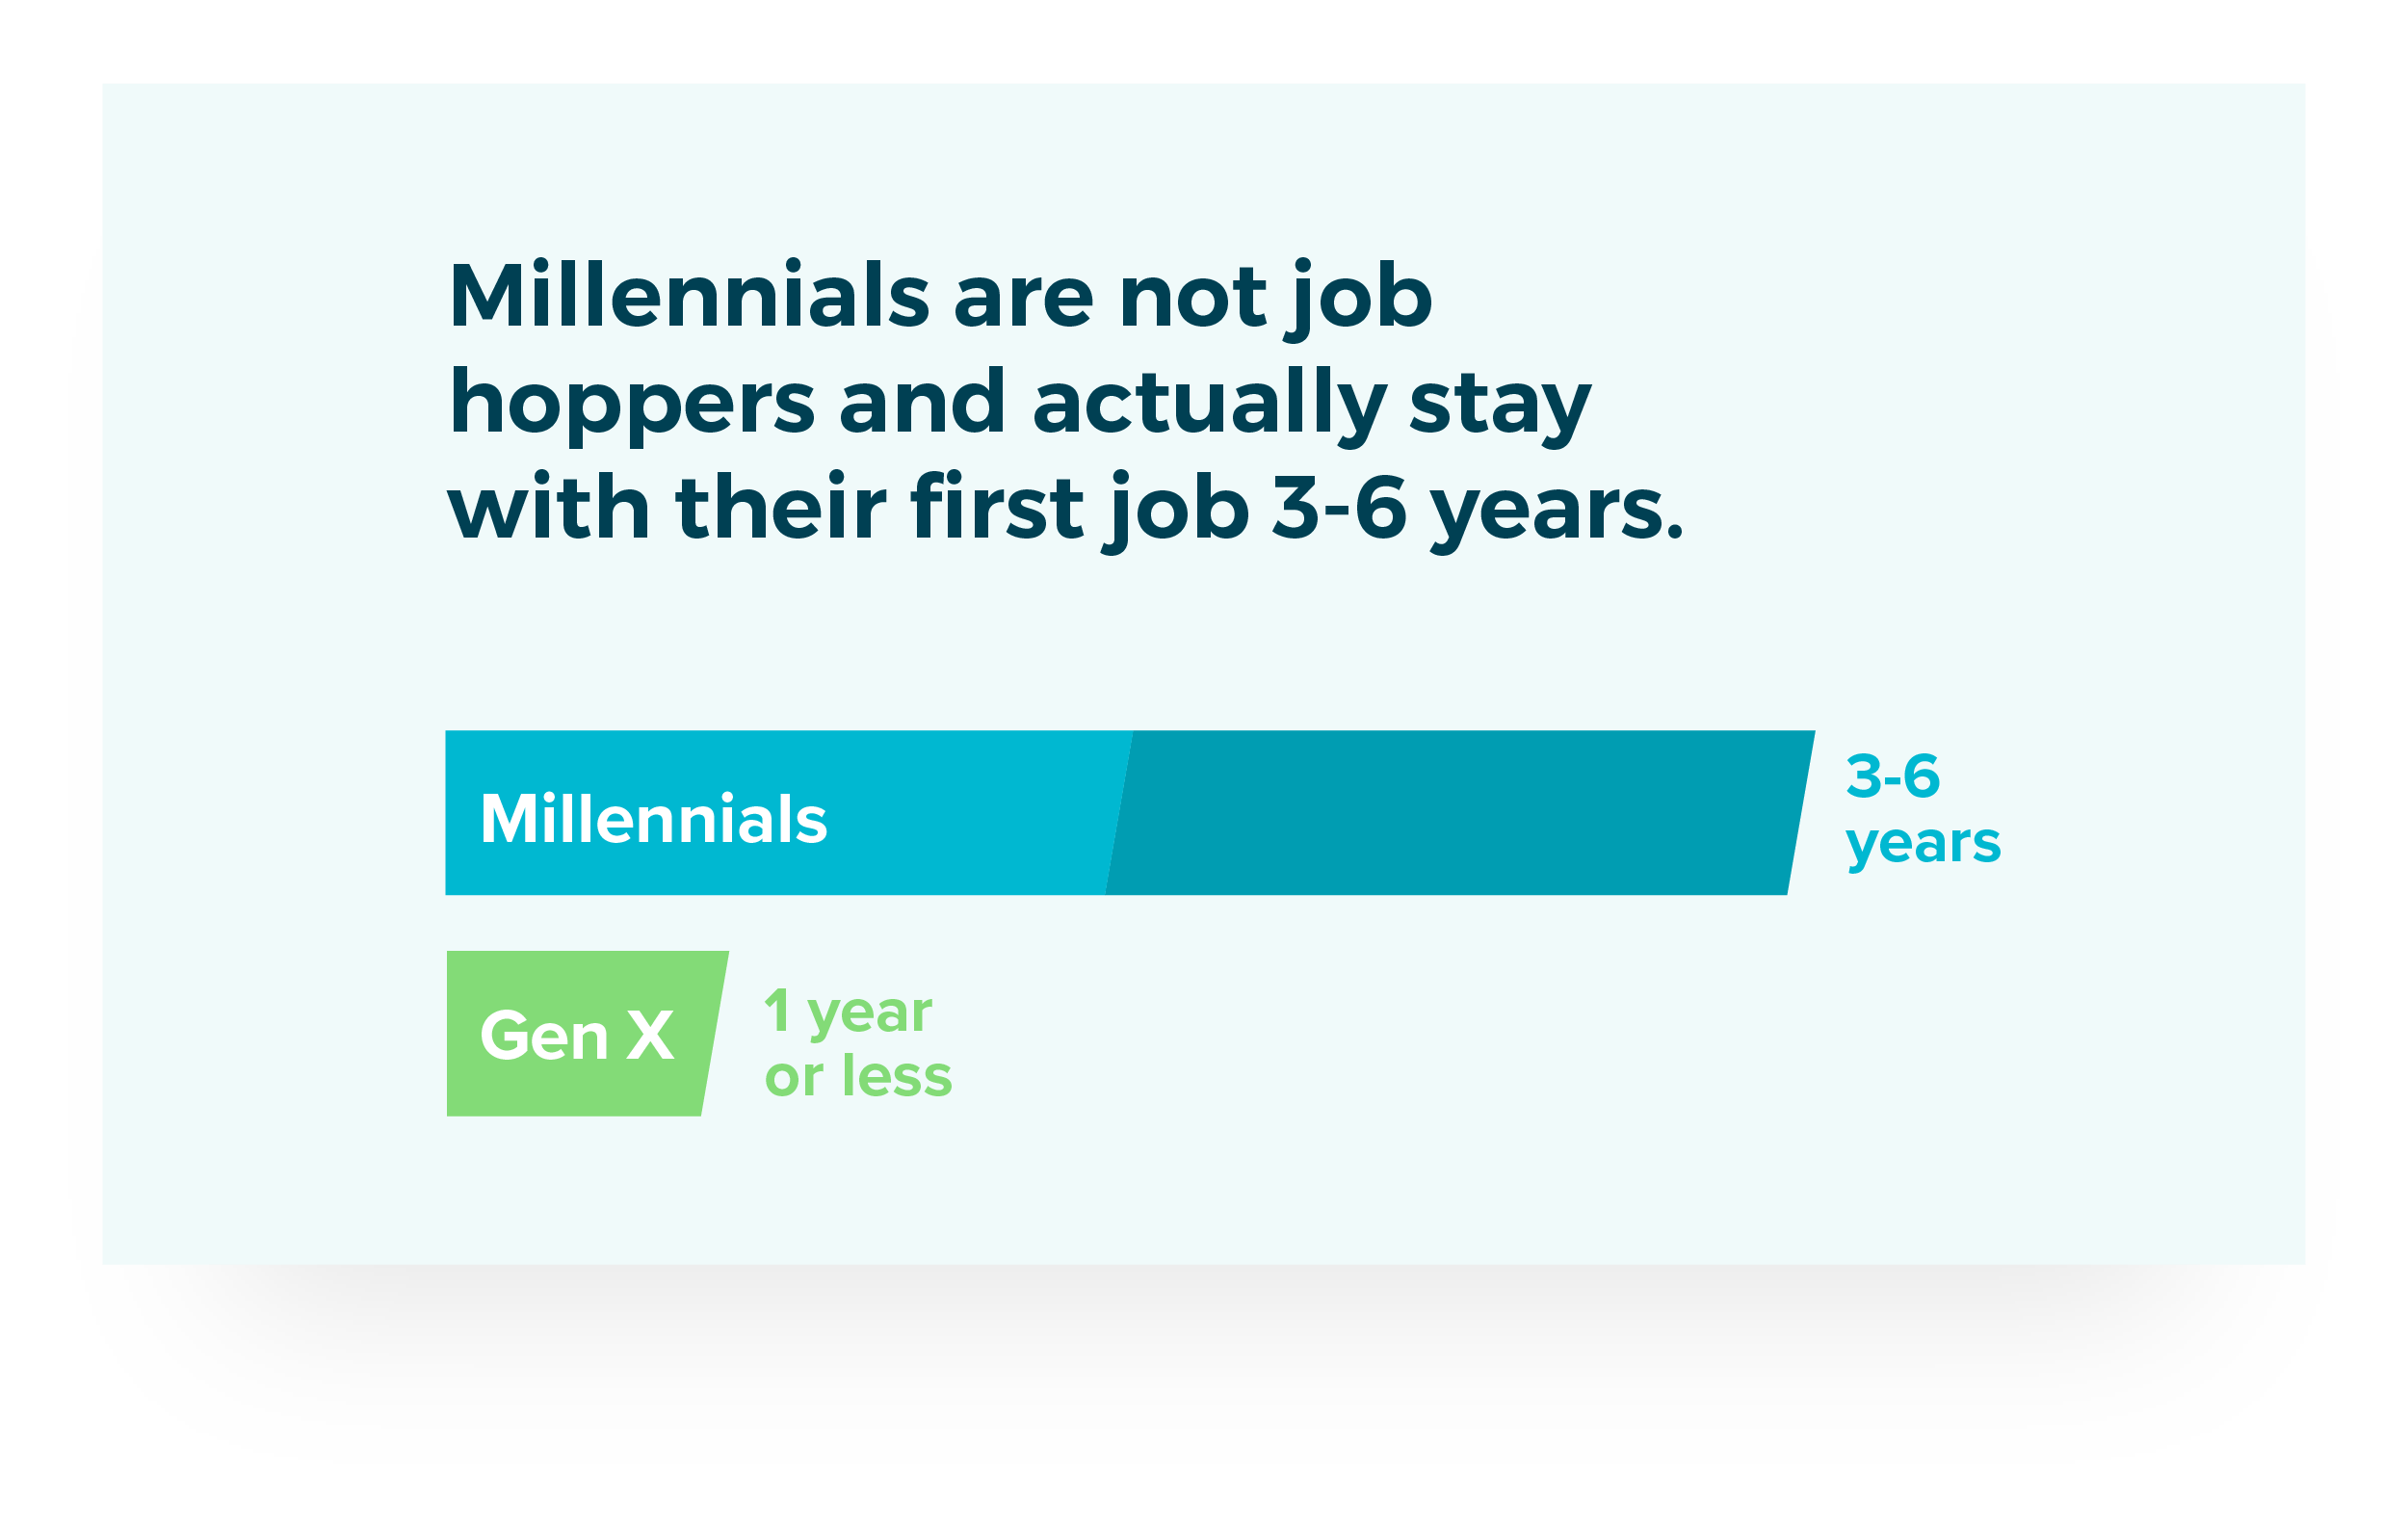 Millennials are not job hoppers and actually stay with their first job 3-6 years vs. Gen X at 1 year or less